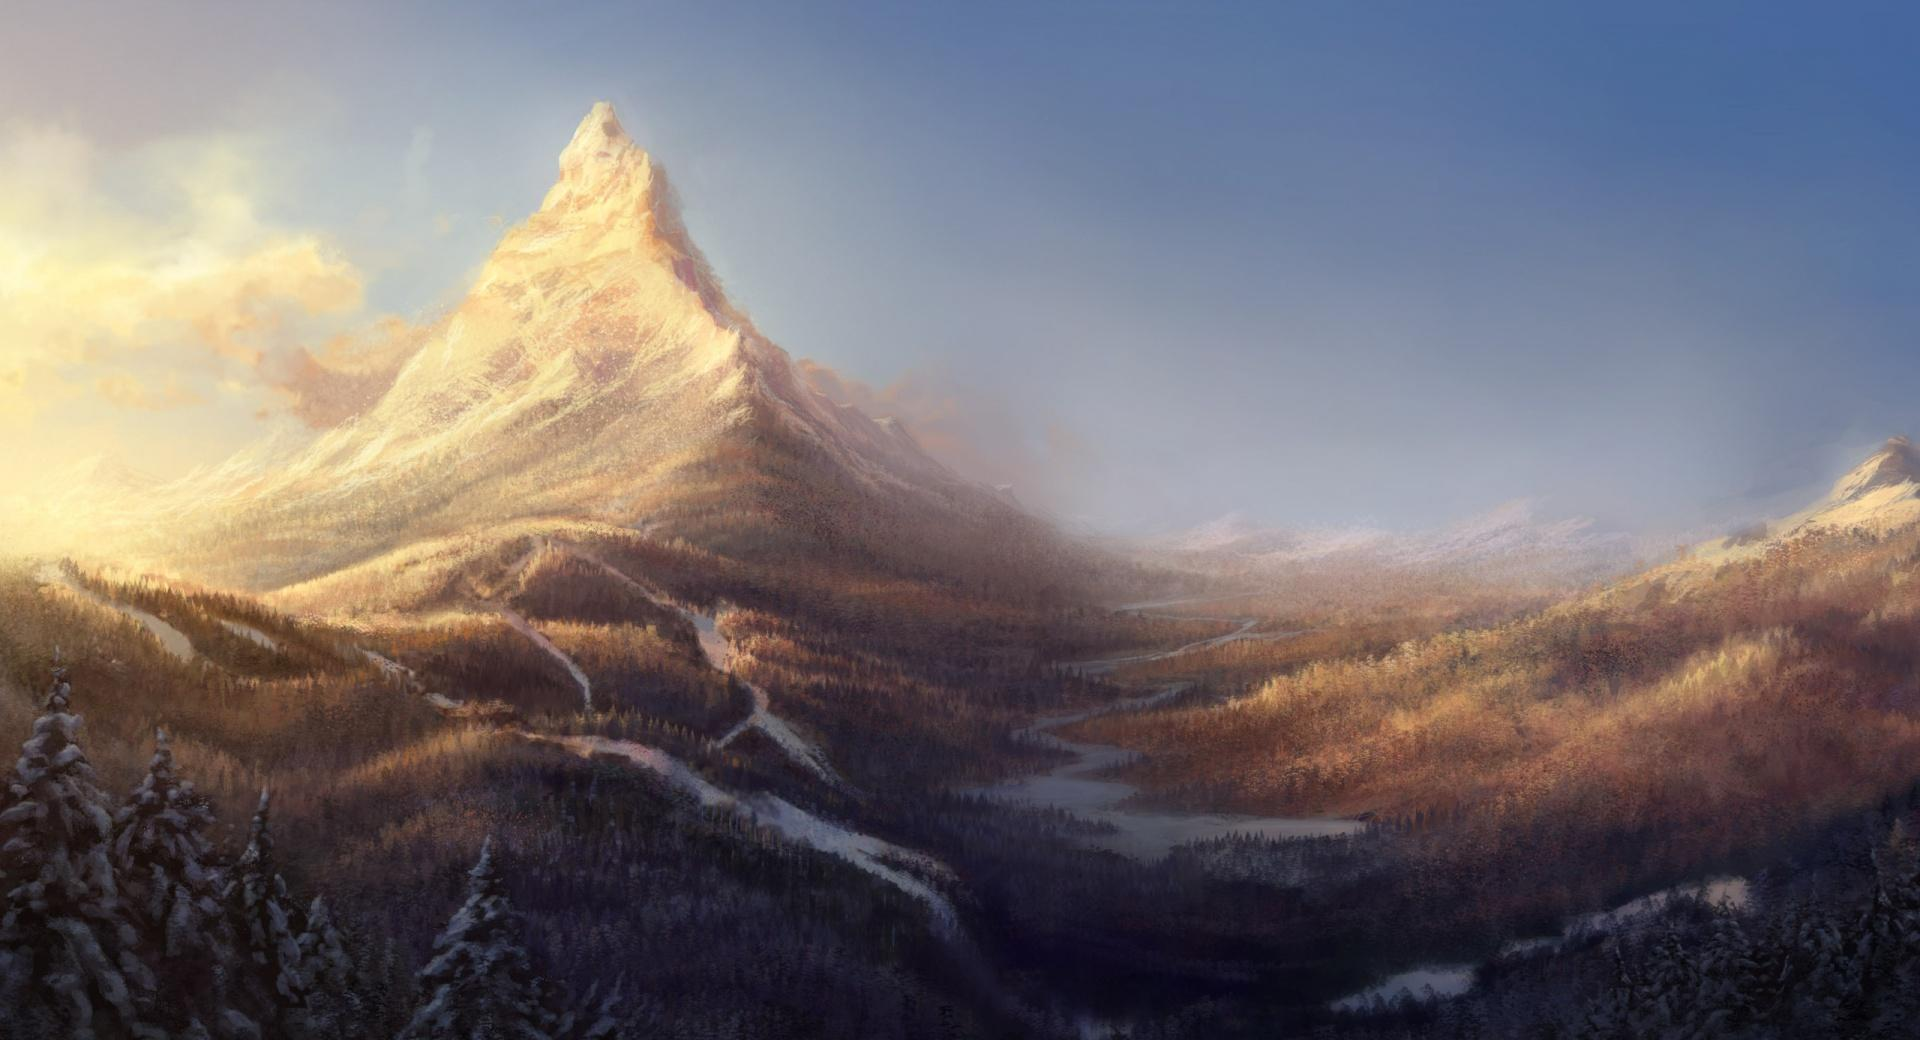 Winter Mountain Painting wallpapers HD quality